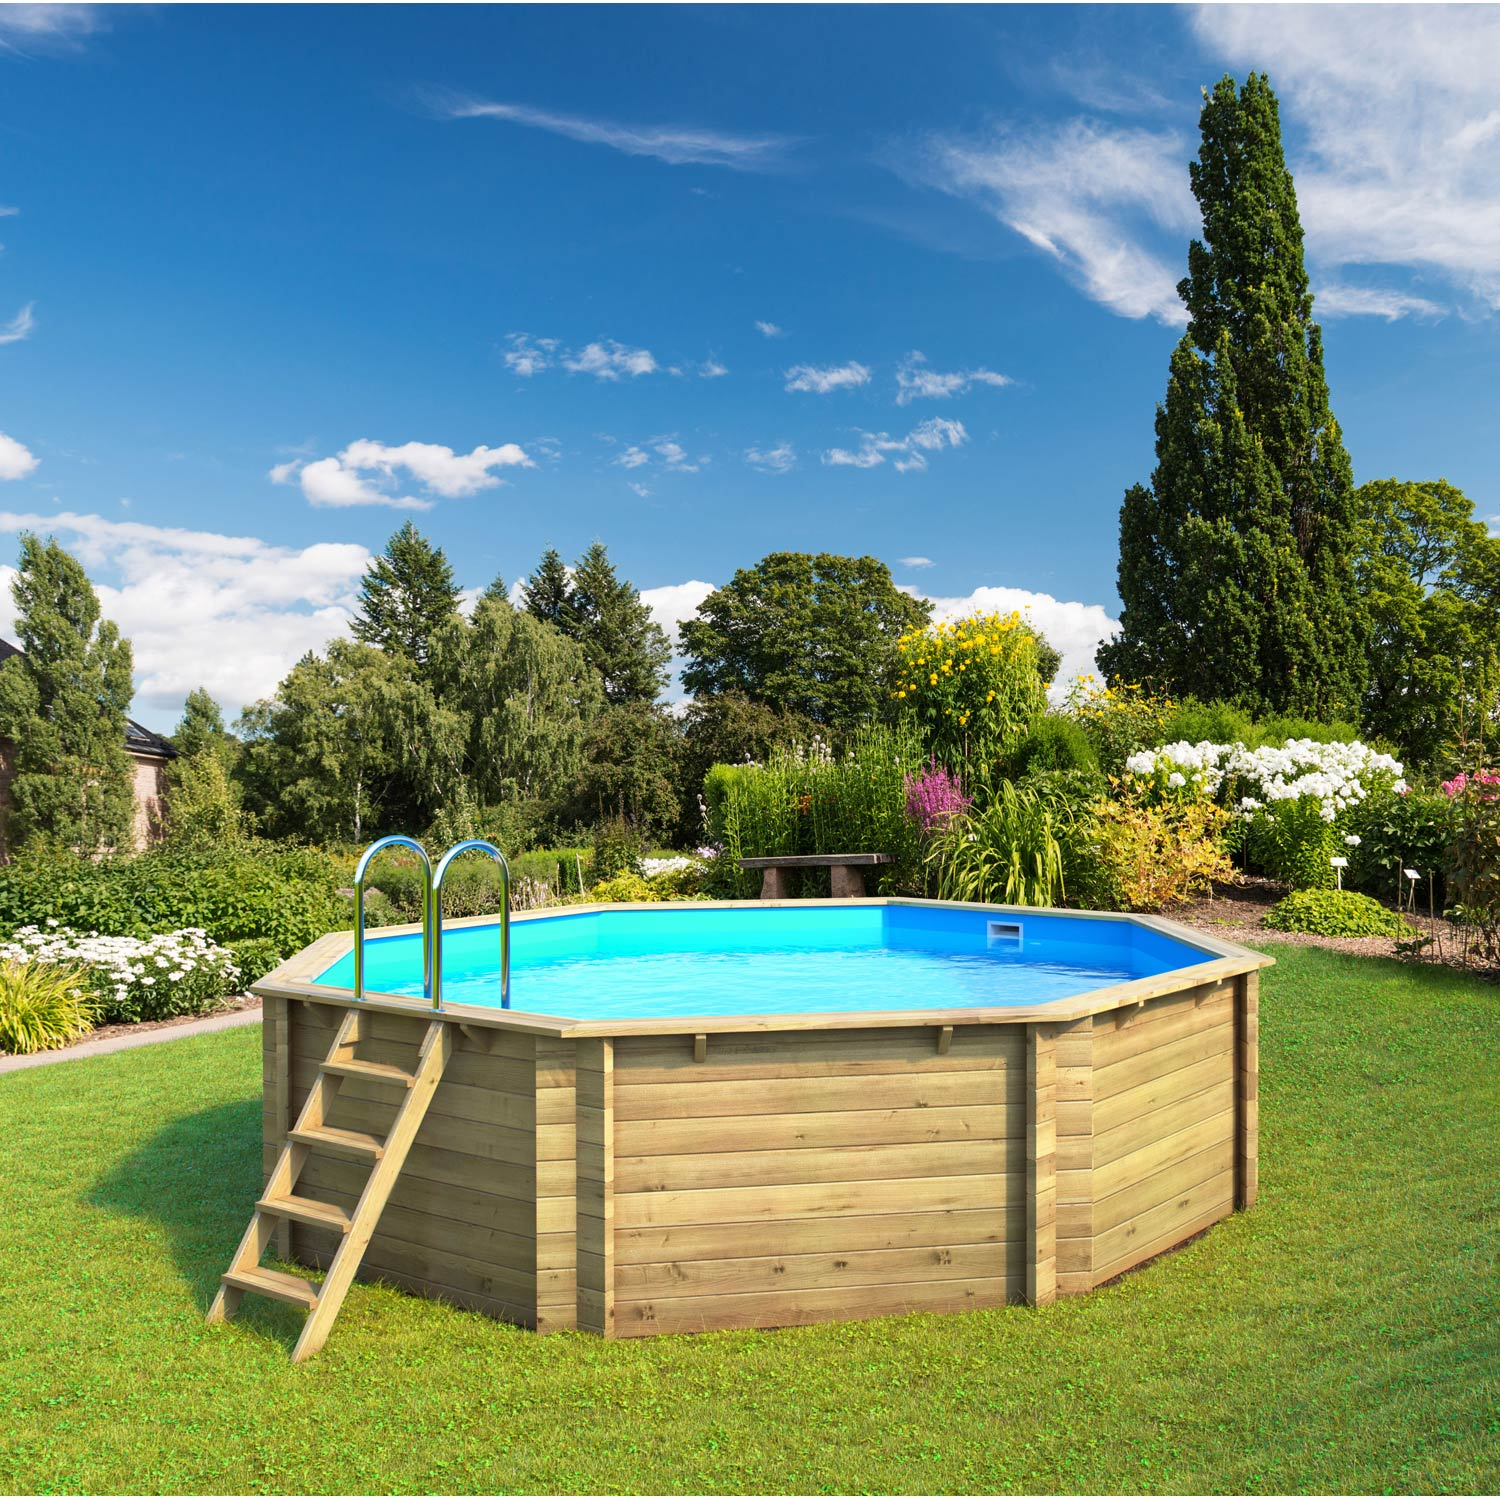 Piscine hors sol bois tropic proswell by procopi l x for Piscine hors sol legislation